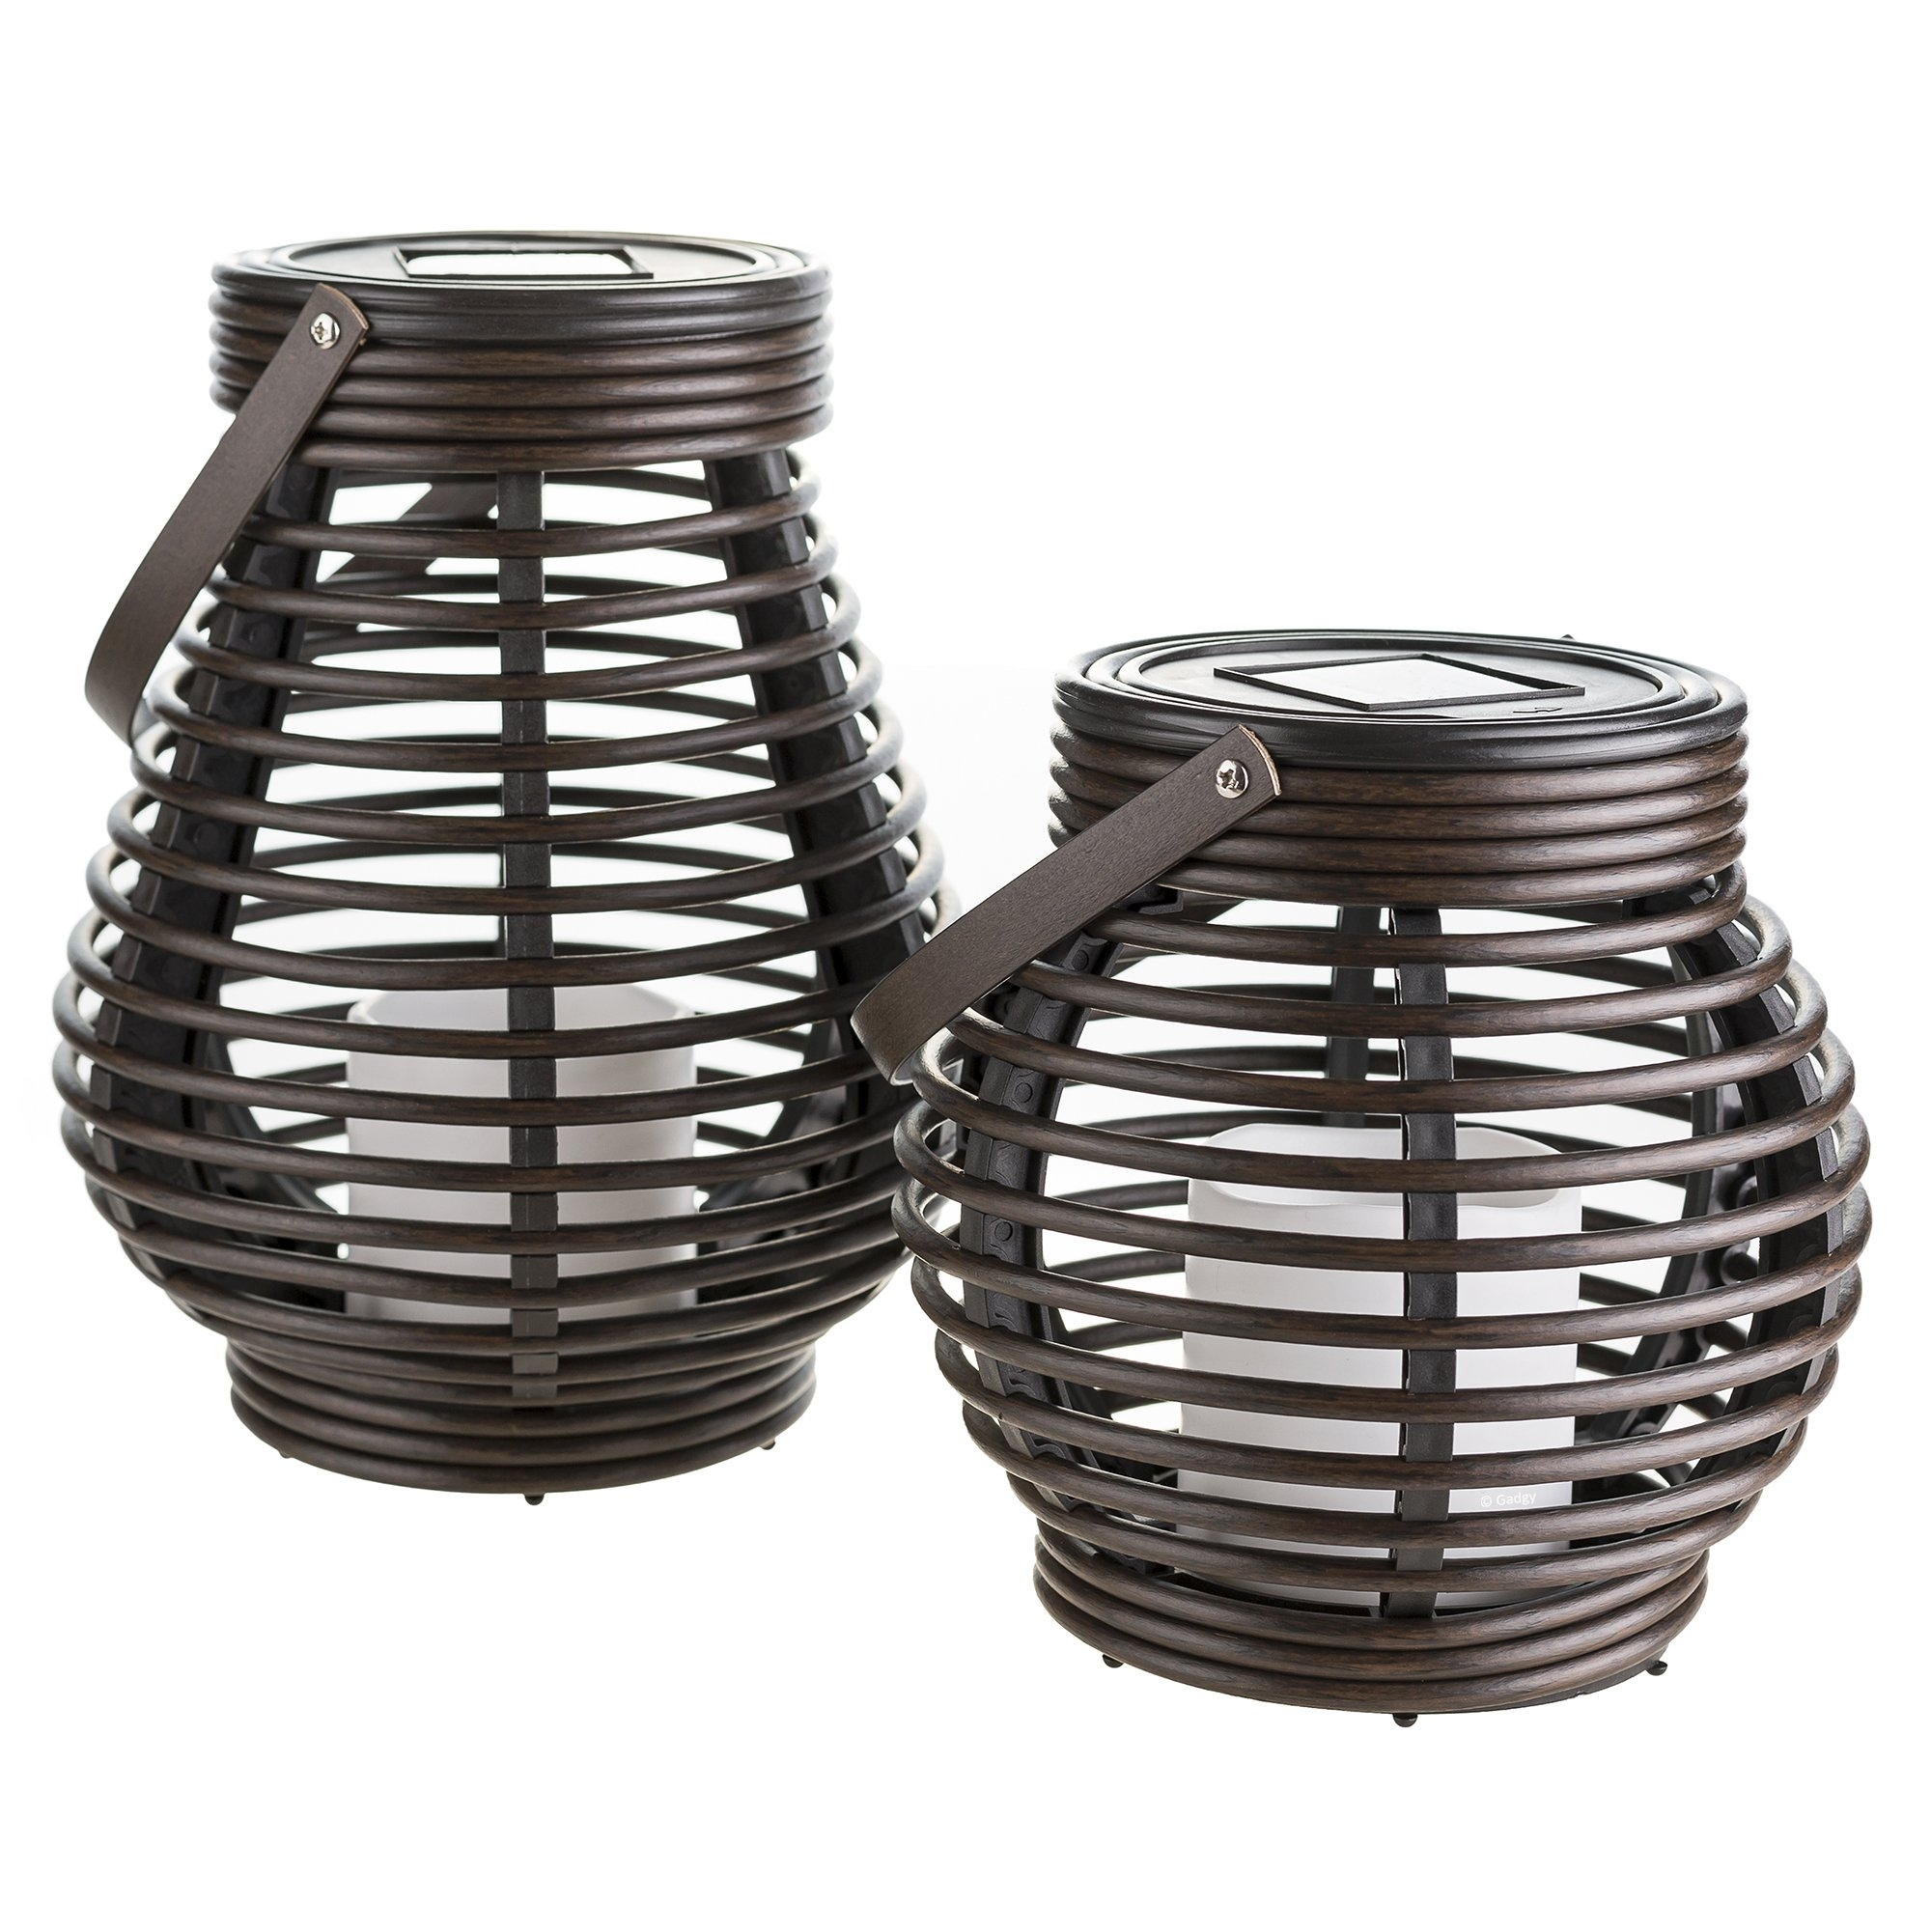 Gadgy ® Solar Lantern Set Rattan Look | Brown Marbled Plastic | 2 For Outdoor Rattan Lanterns (View 5 of 20)